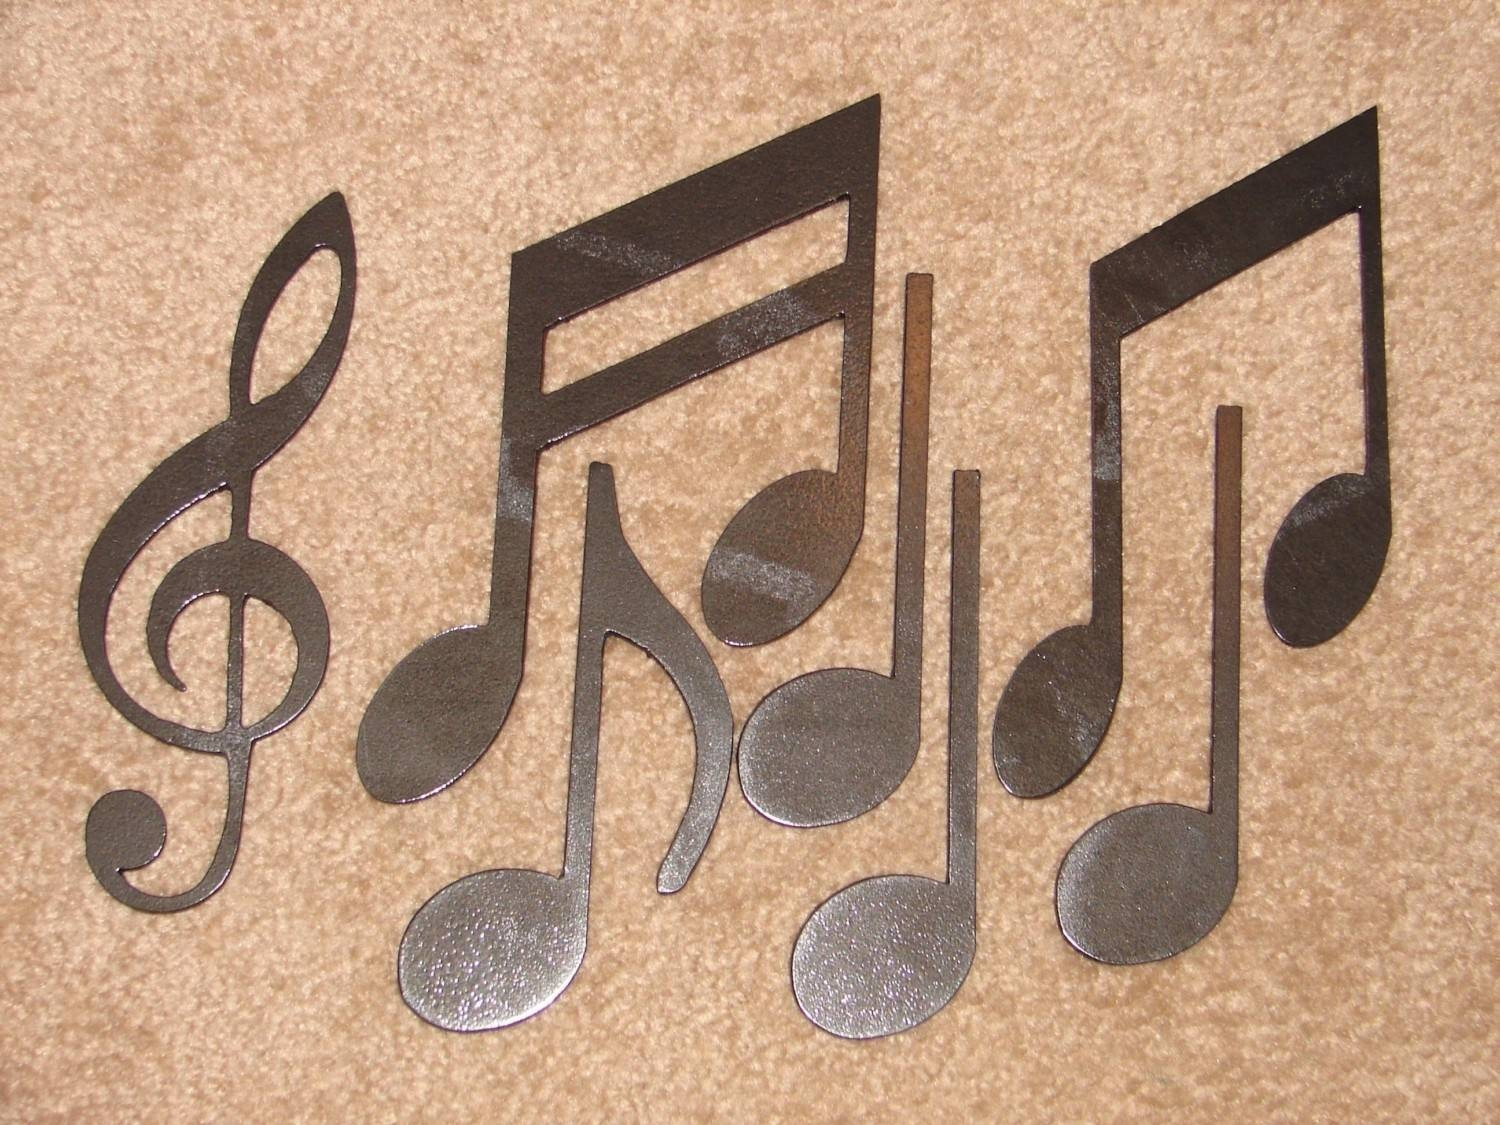 Metal Wall Art Decor Music Notes Musical Note Patio Within Recent Music Note Wall Art (View 7 of 20)